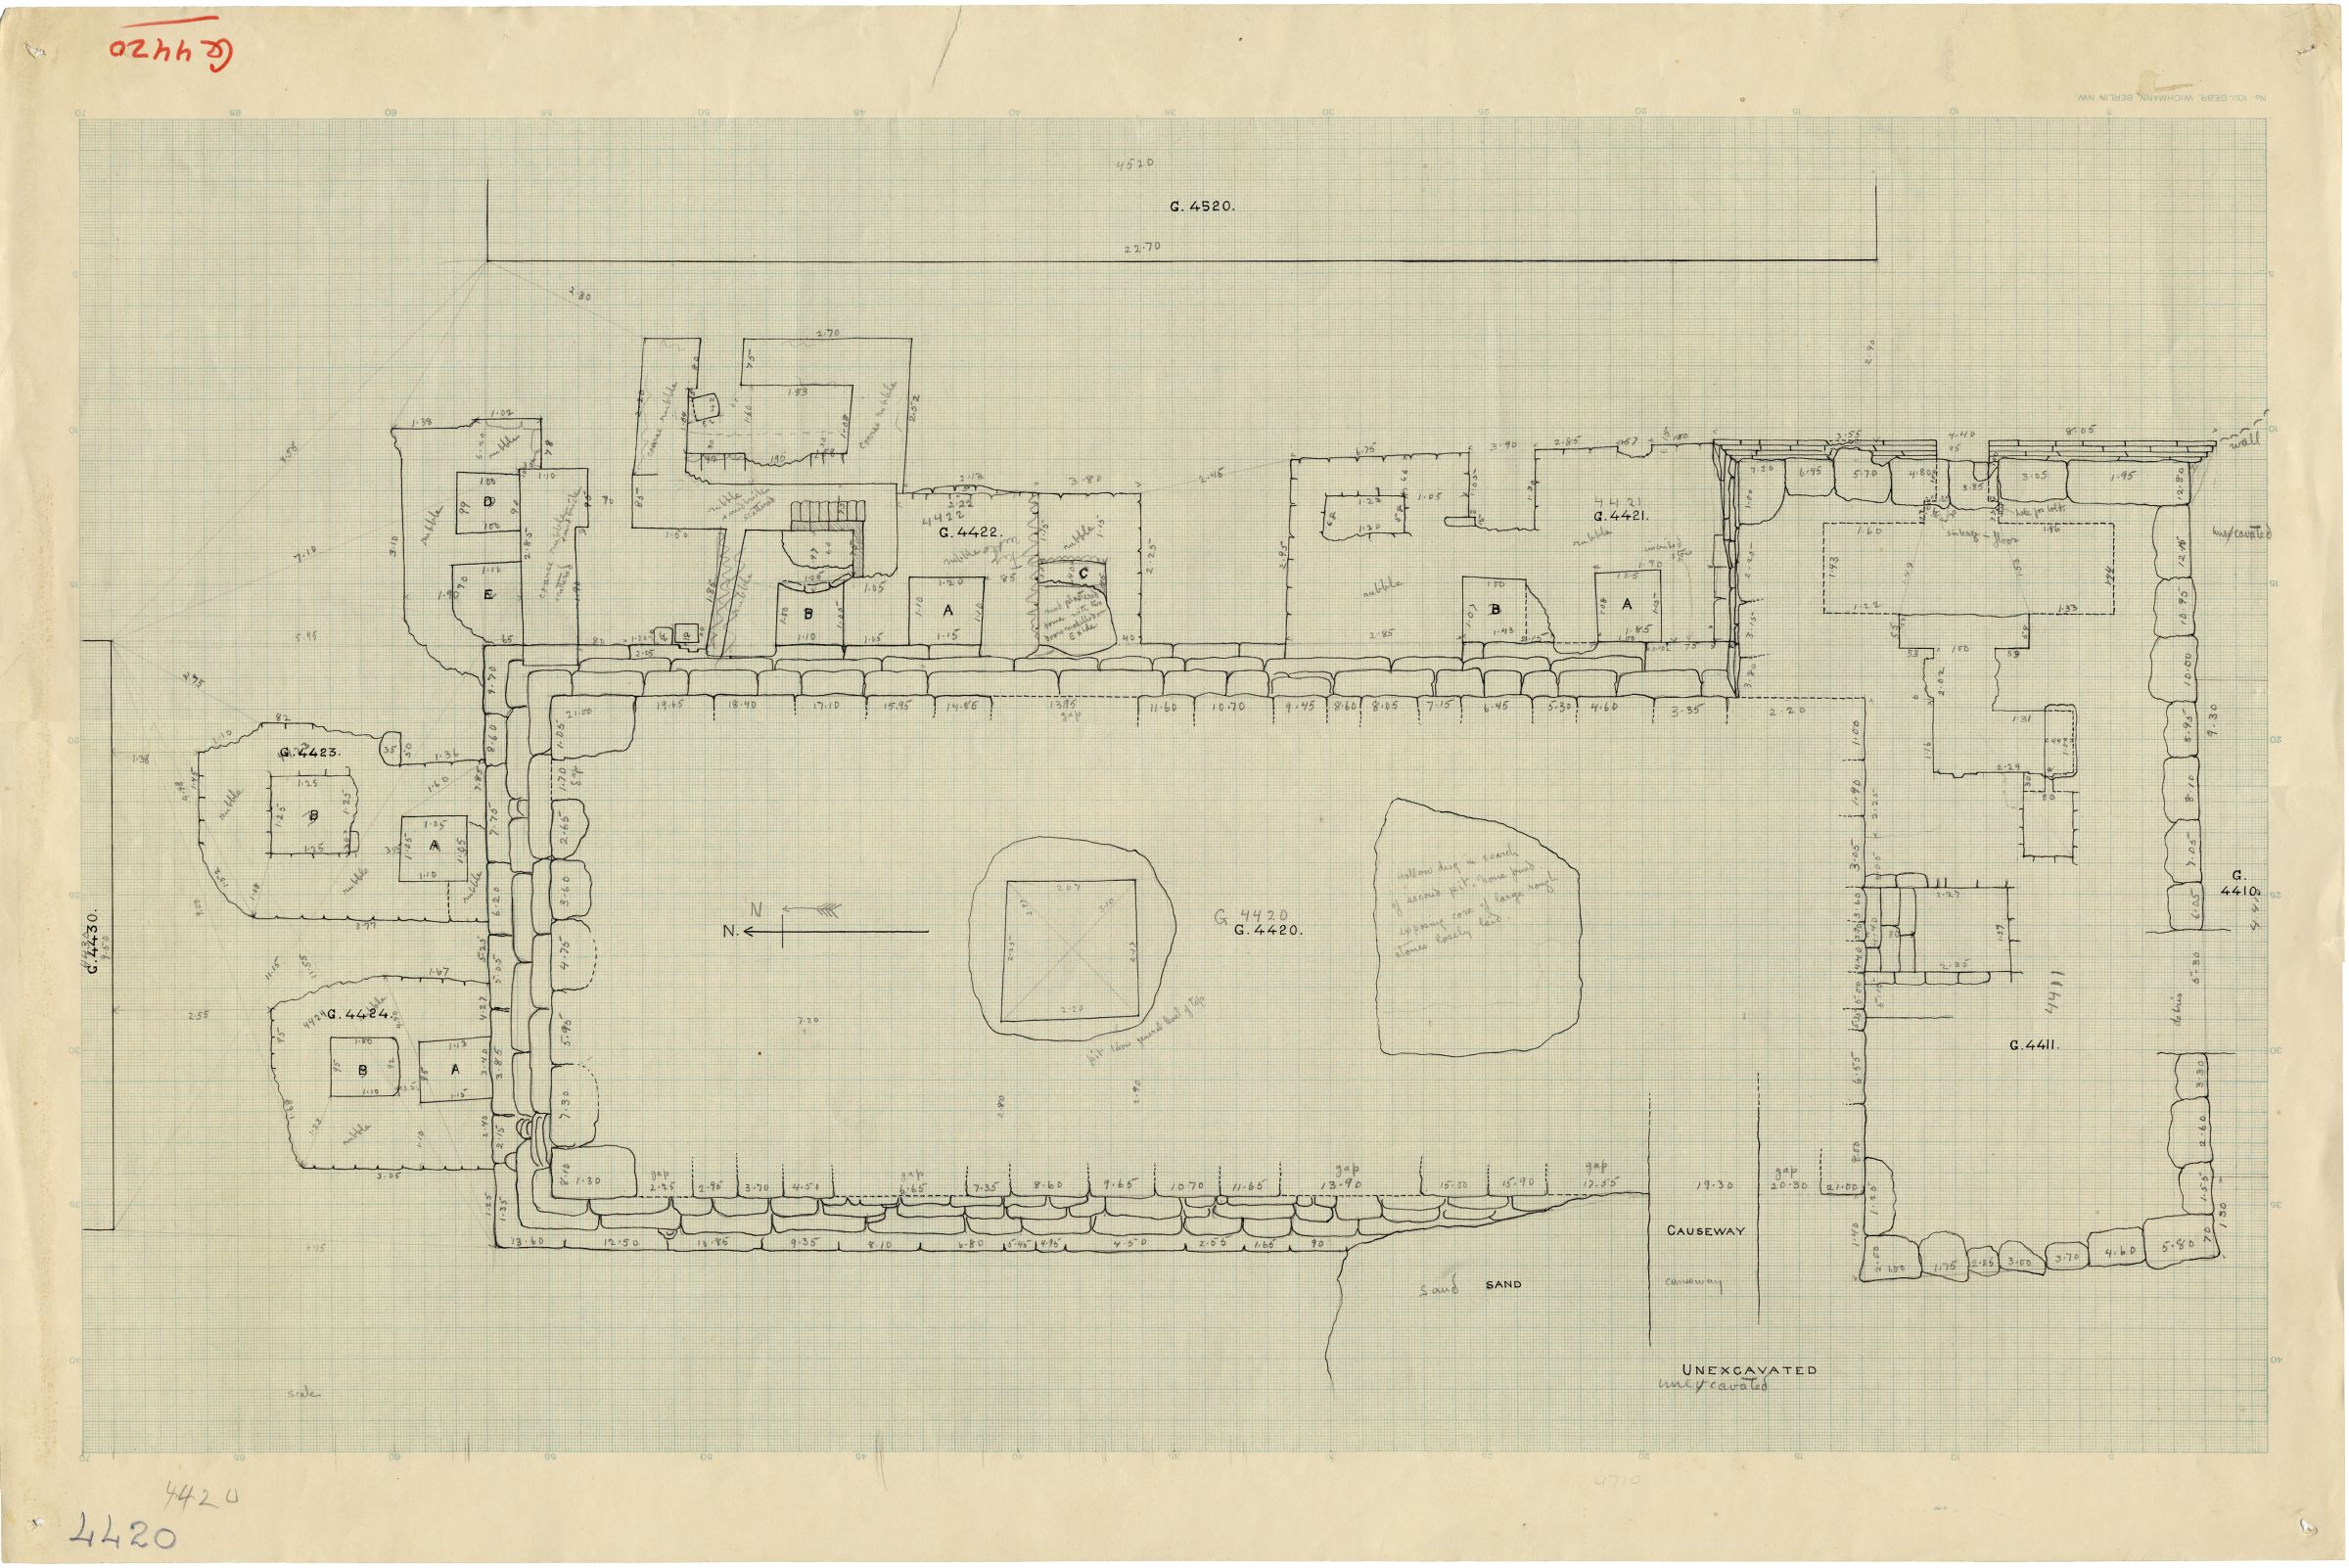 Maps and plans:  Plan of G 4420, with positions of G 4410, G 4411, G 4421, G 4422, G 4423, G 4424, G 4430, G 4520